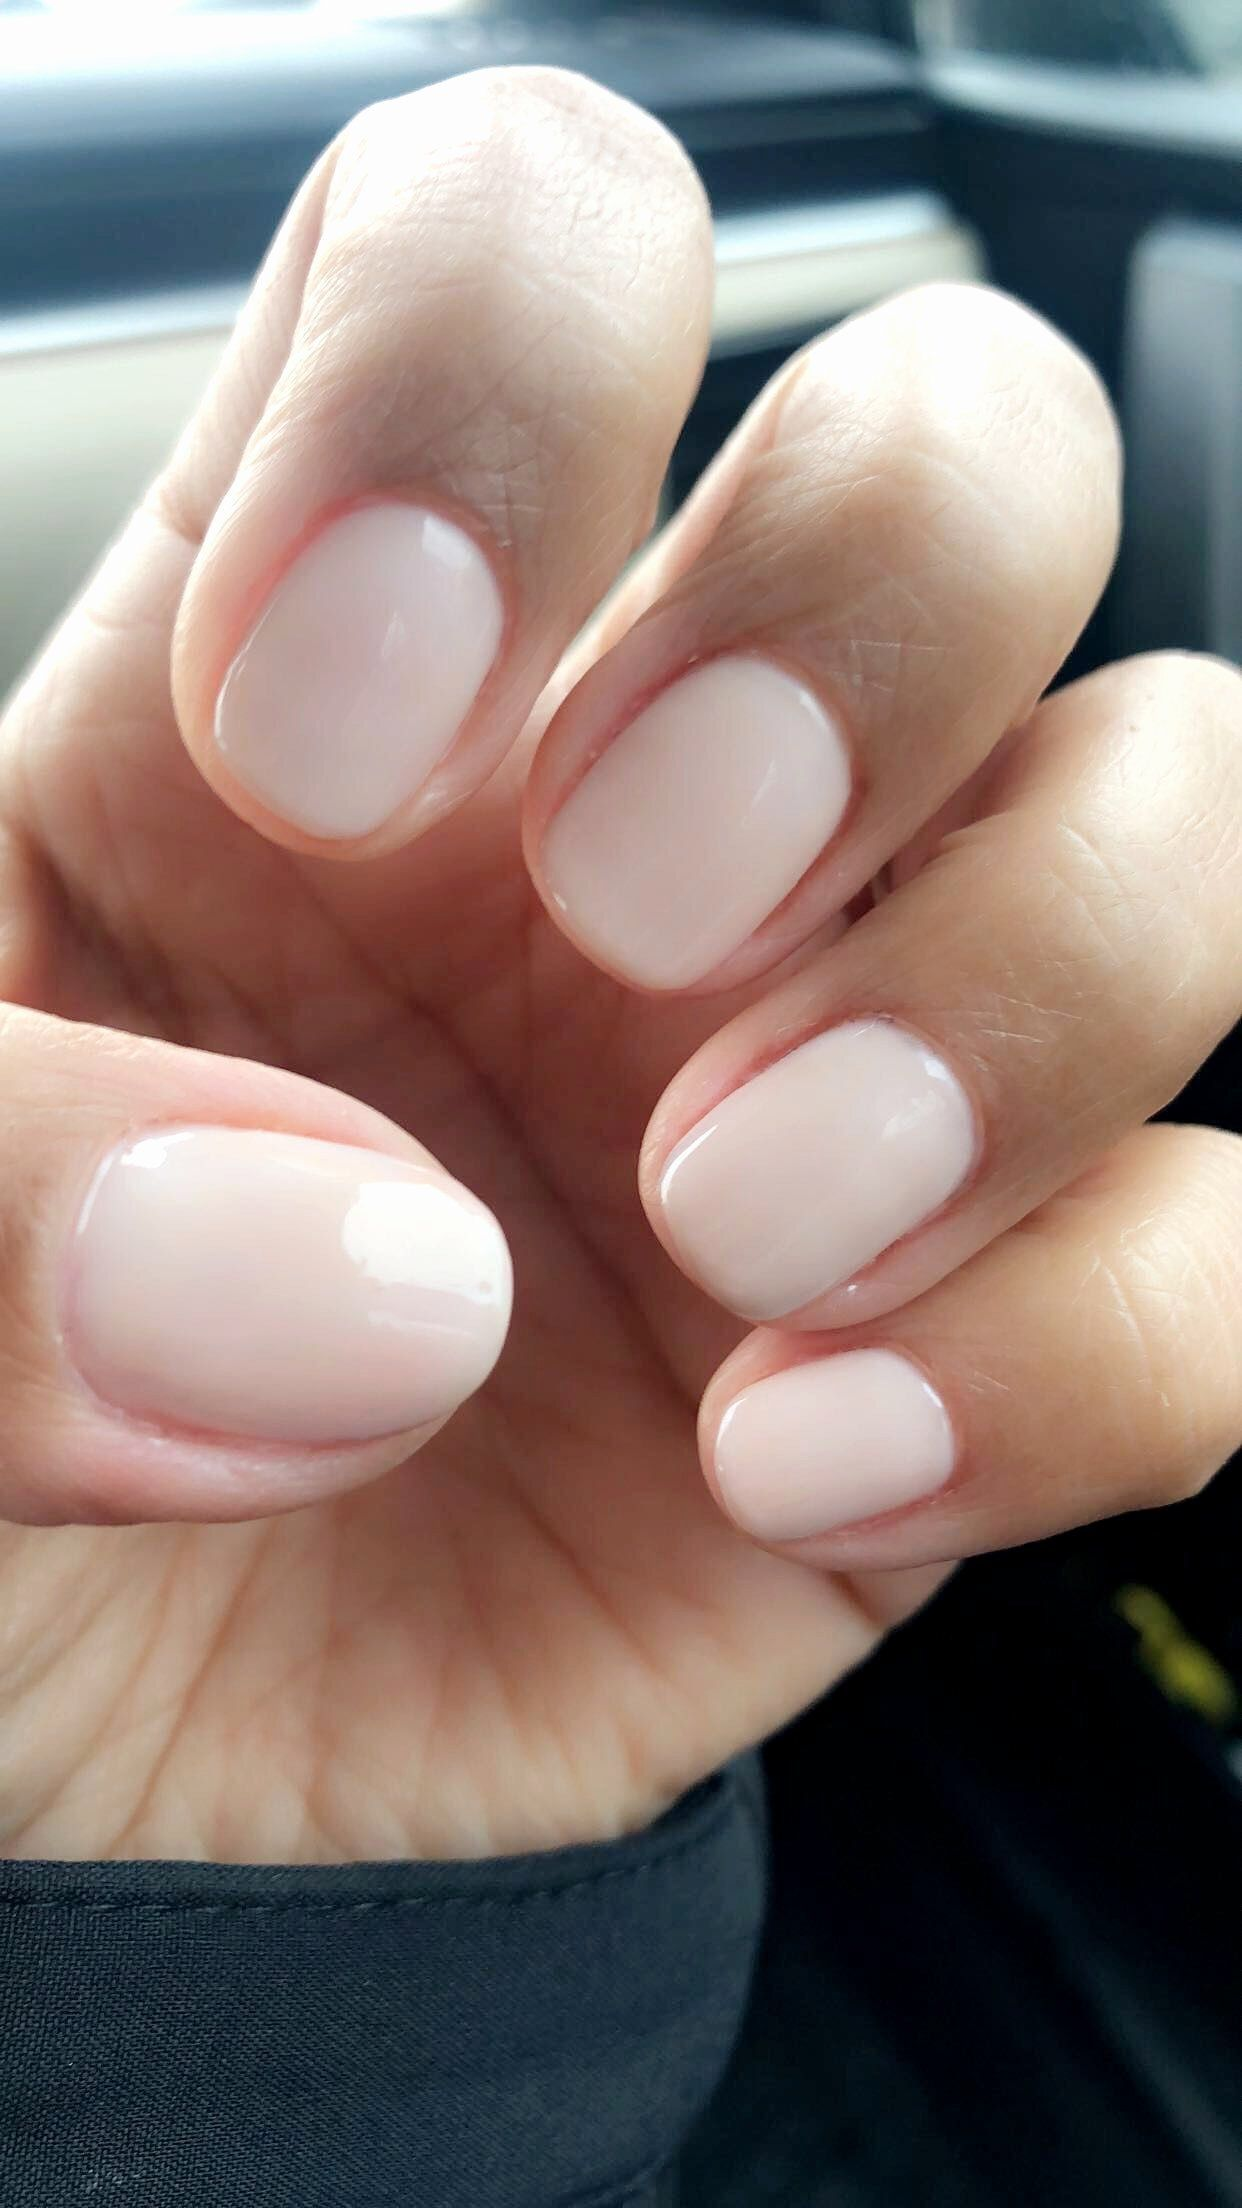 Natural Gel Nail Polish In 2020 Natural Gel Nails Opi Gel Polish Gel Nails Pictures